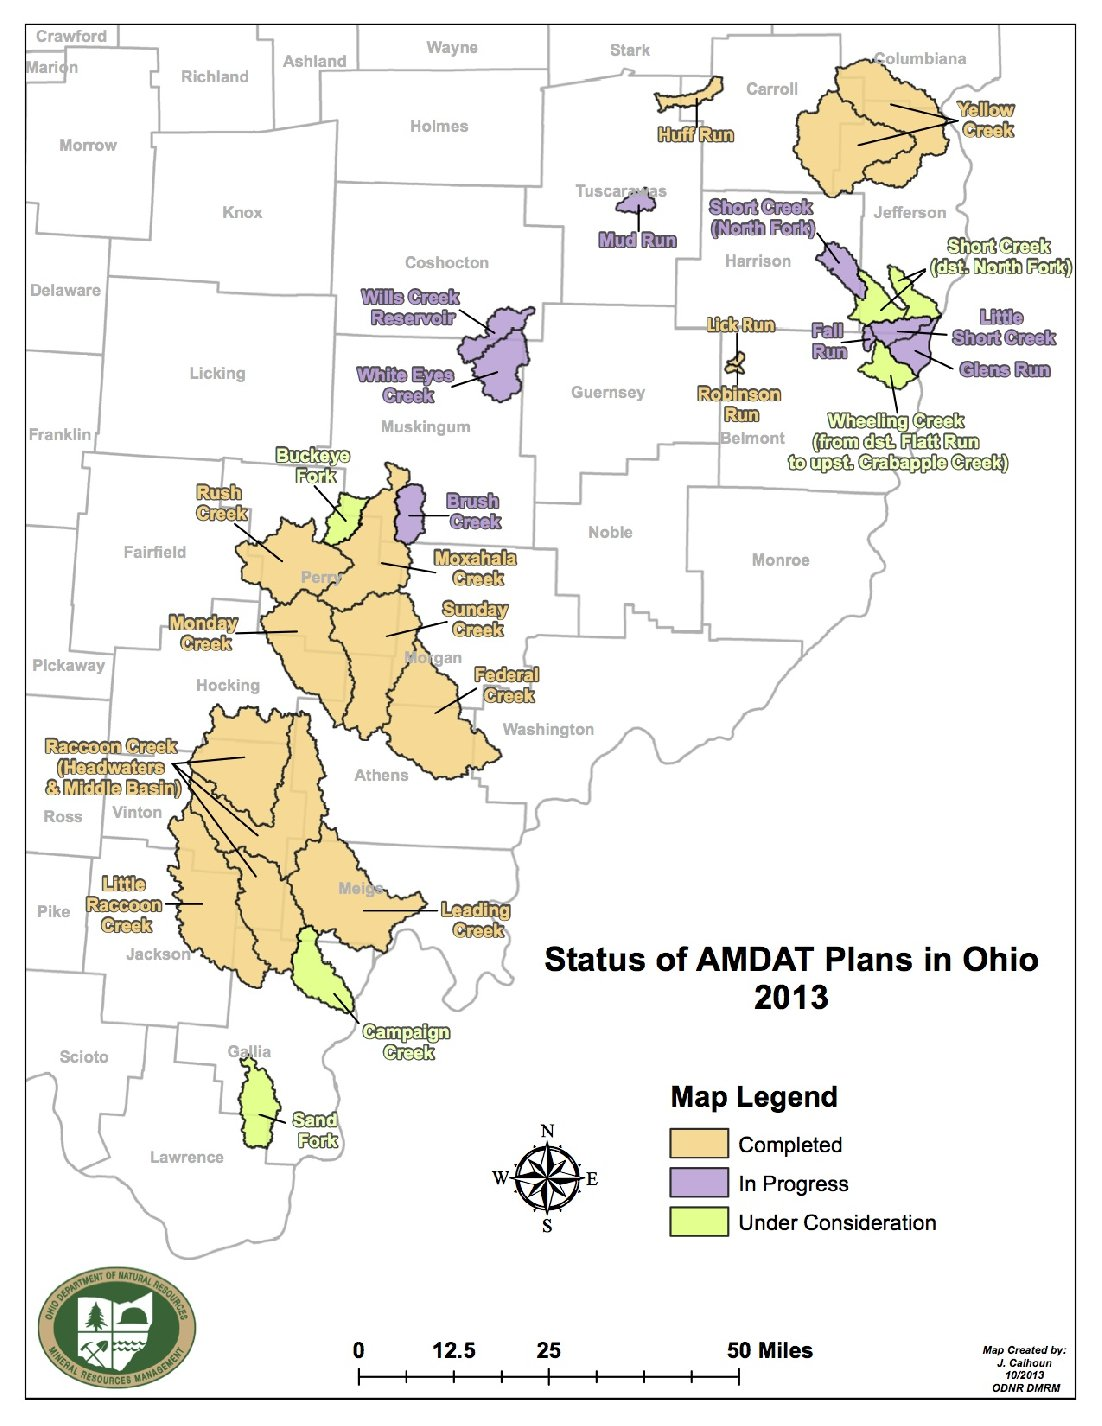 To date, the Ohio Department of Natural Resources has partnered with watershed groups to complete 55 AMD projects. Credit: Ohio Department of Natural Resources